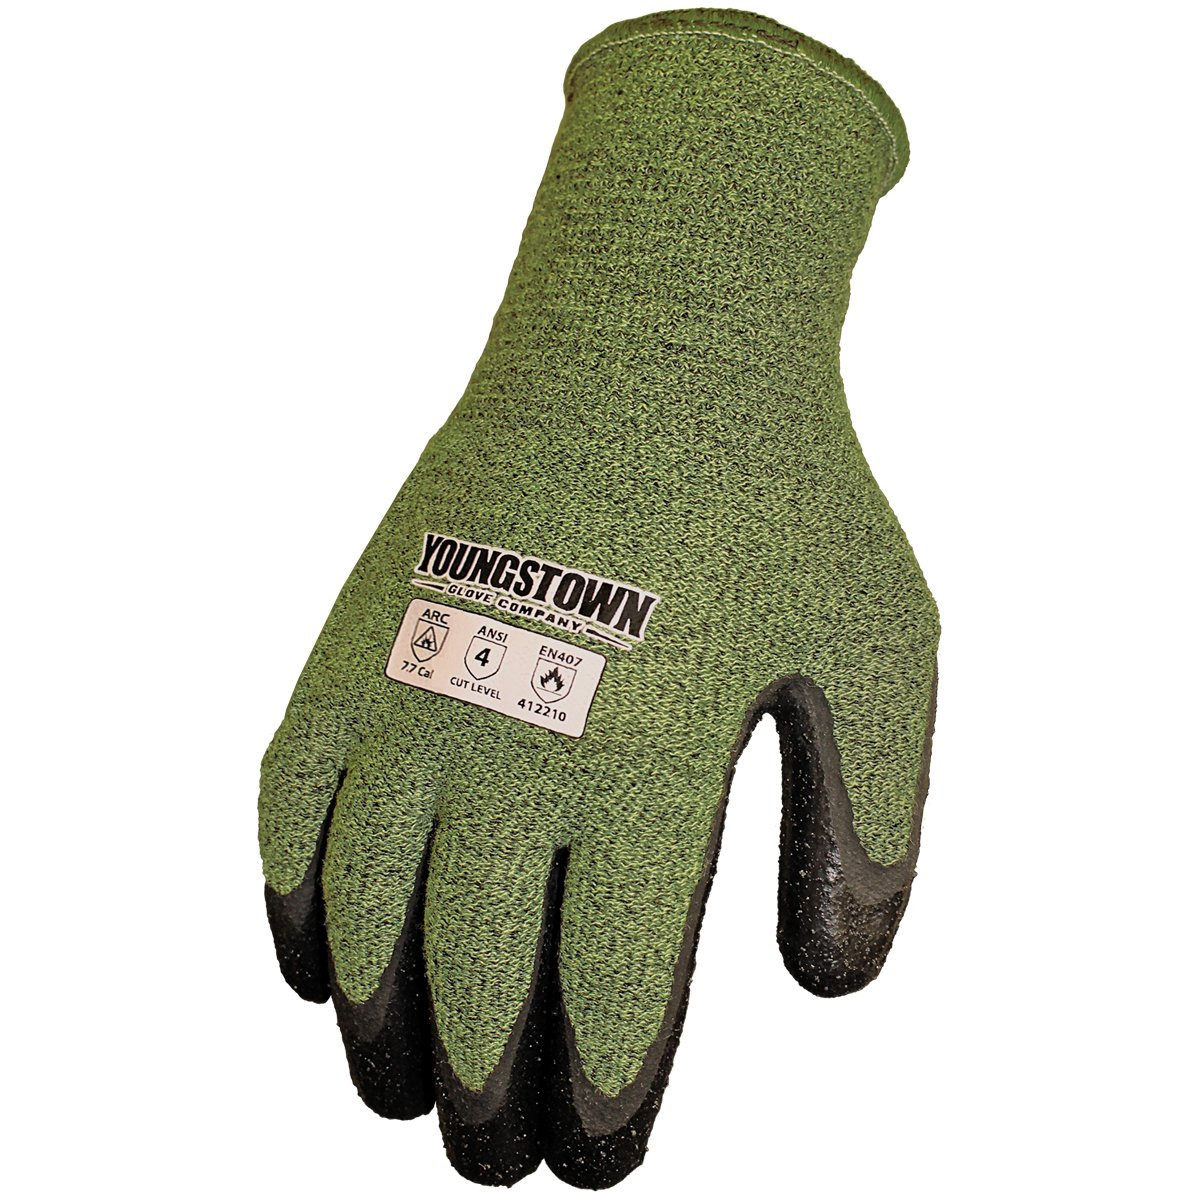 Youngstown Glove 12-4000-60-L FR 4000 Cut-Resistant Gloves, Large, Multicolored